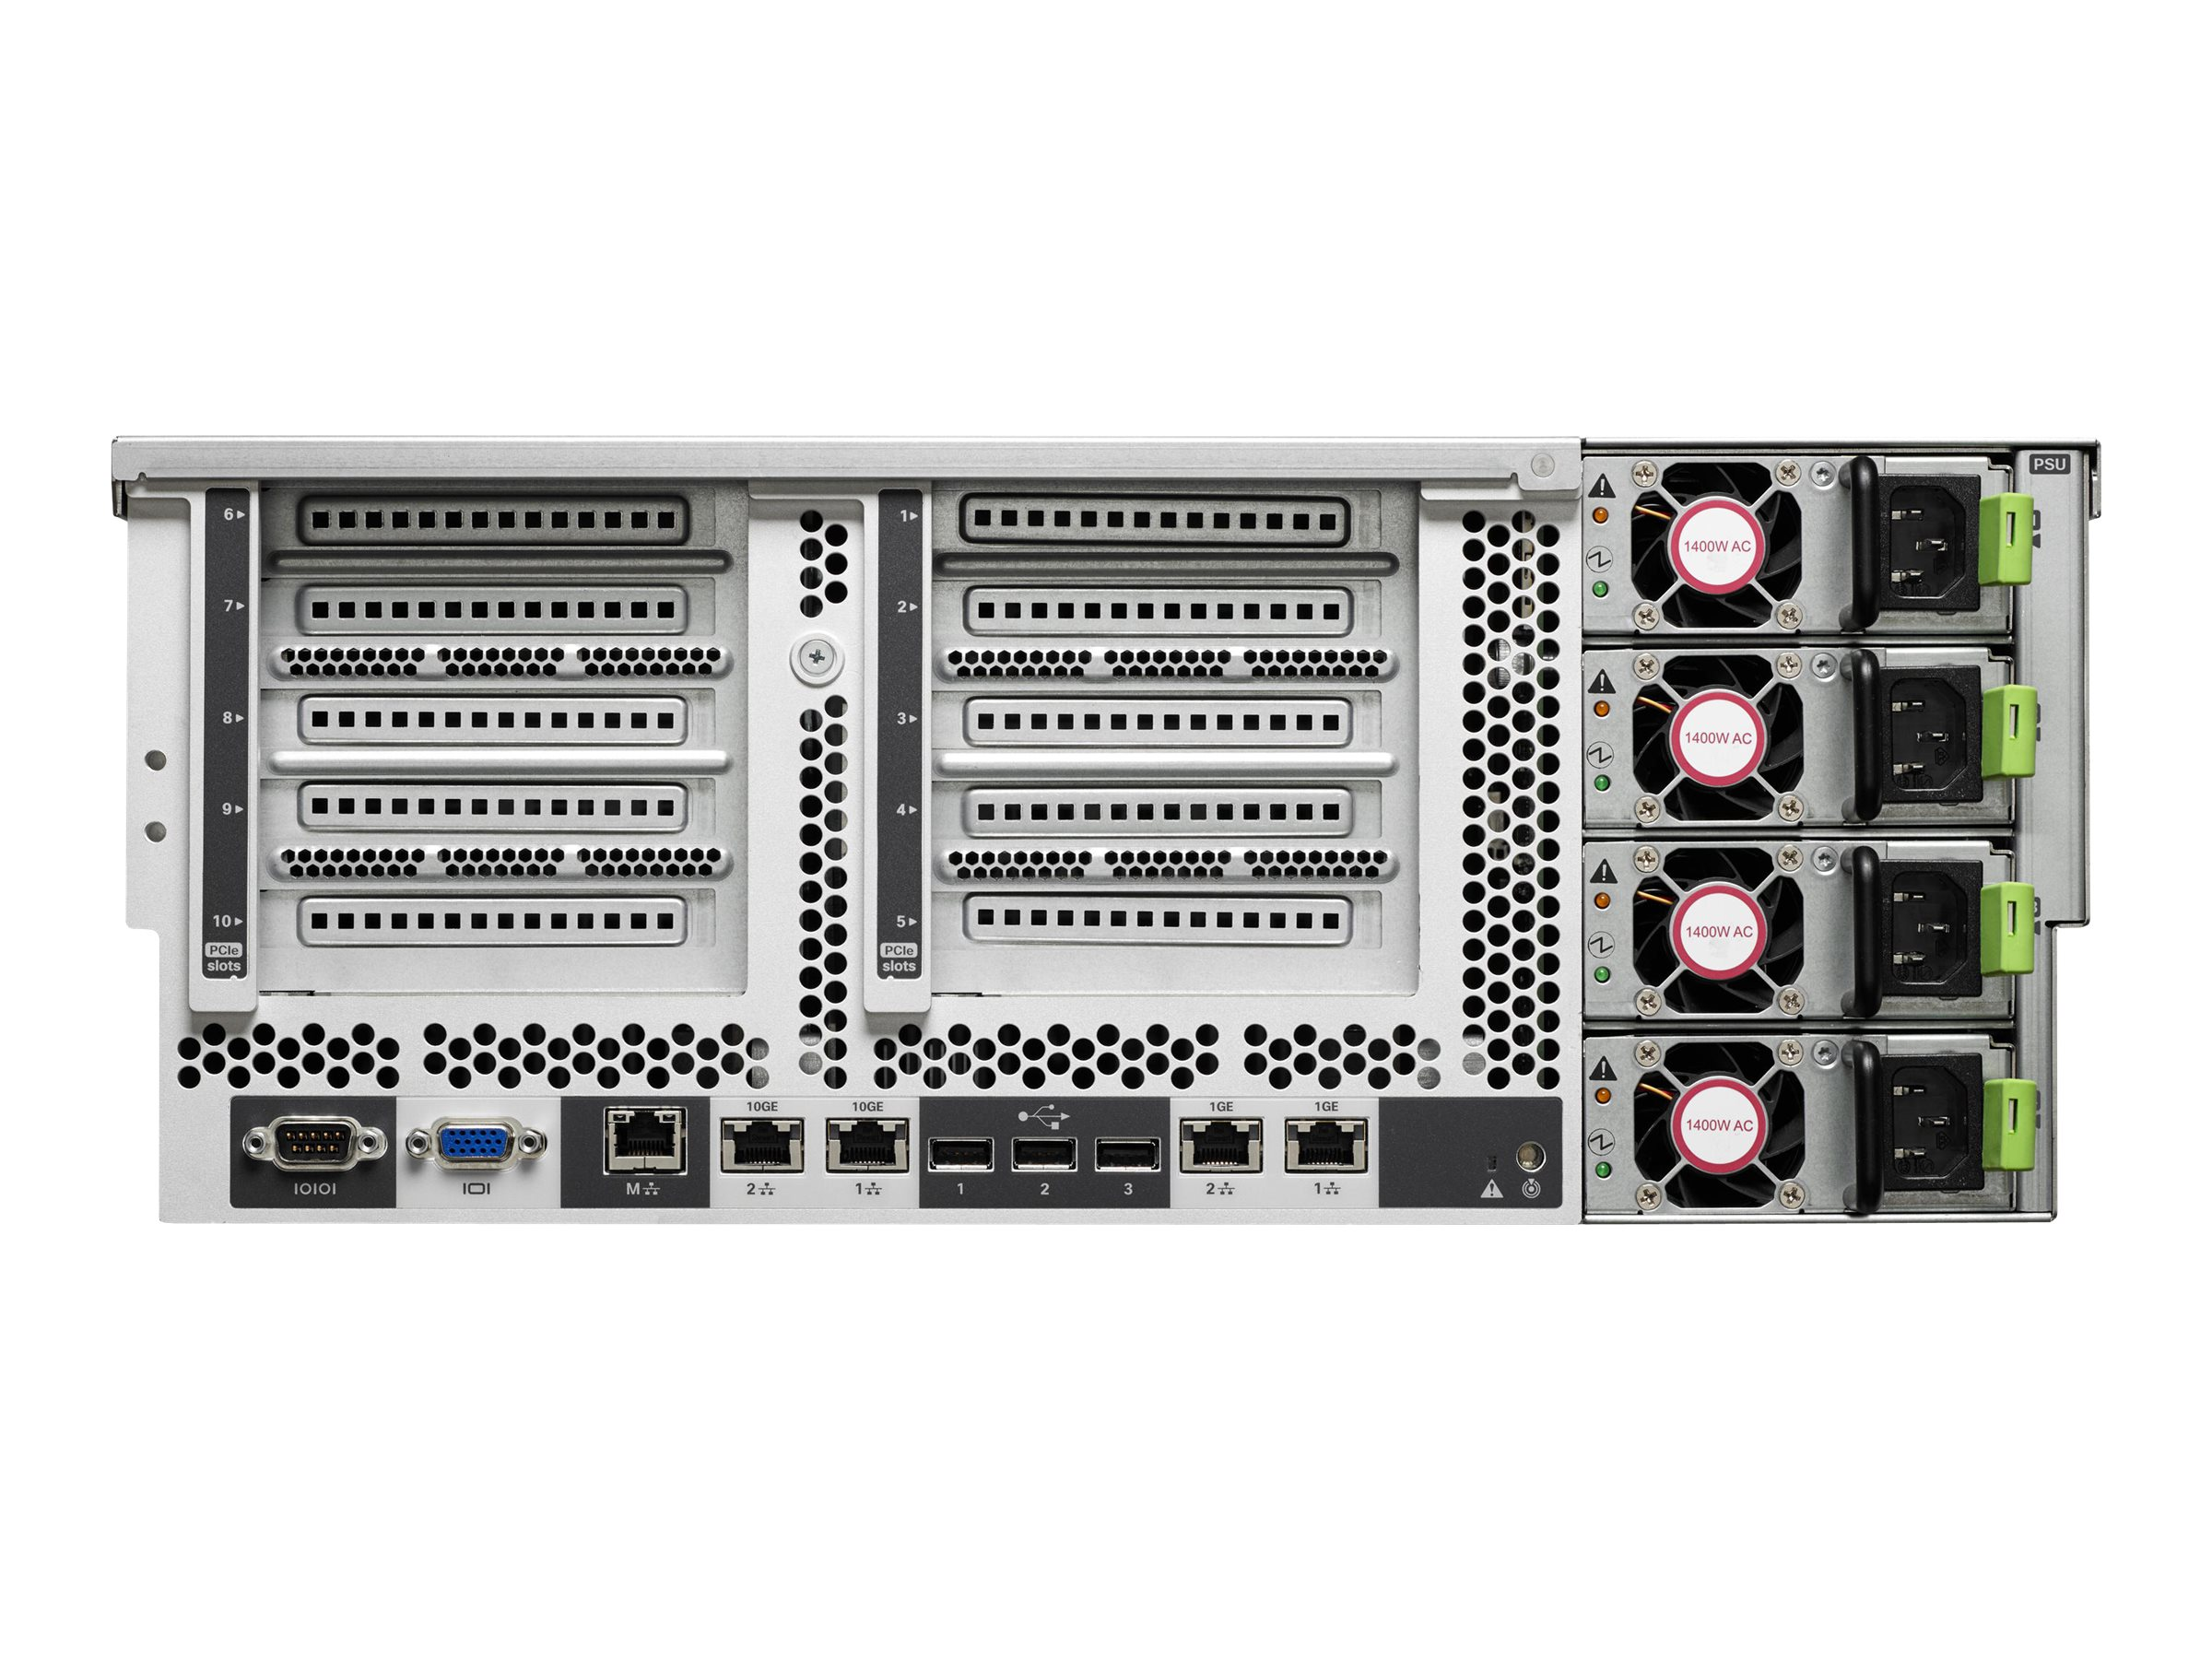 Cisco UCS C460 M4 4U Rack Server (4) Xeon E7-4880v2 1TB RAM 900GB, UCS-SA-C460M4-03